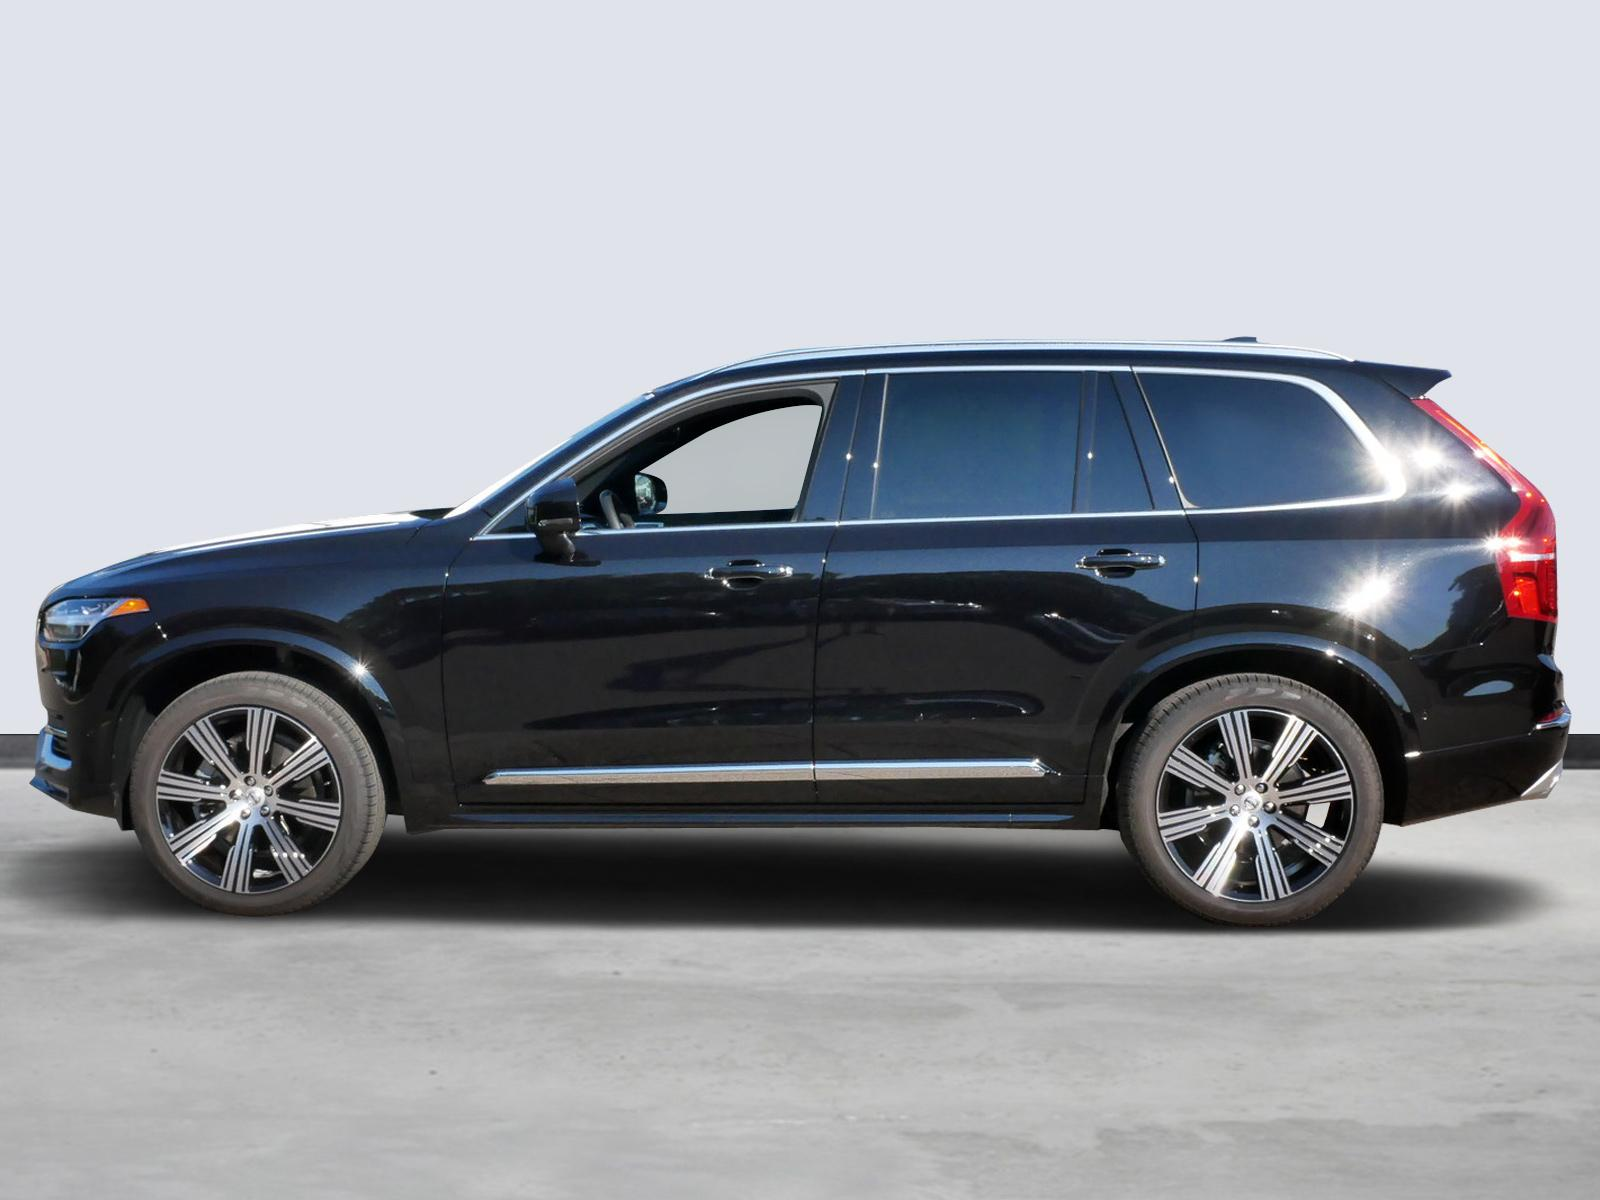 Used 2021 Volvo XC90 Inscription with VIN YV4A22PL9M1753680 for sale in Minneapolis, Minnesota